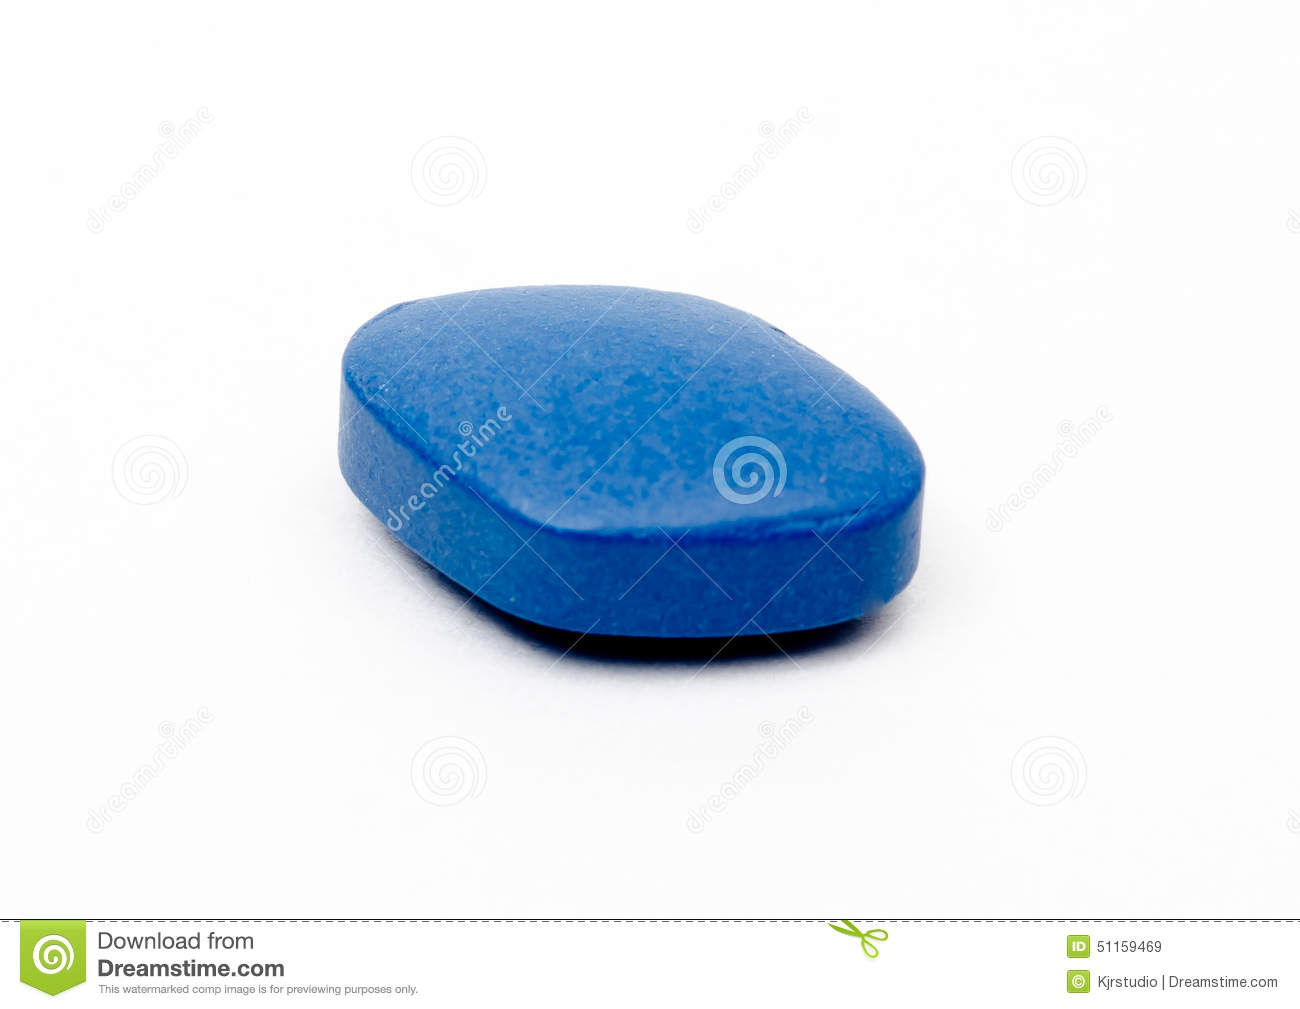 Is viagra a blue pill